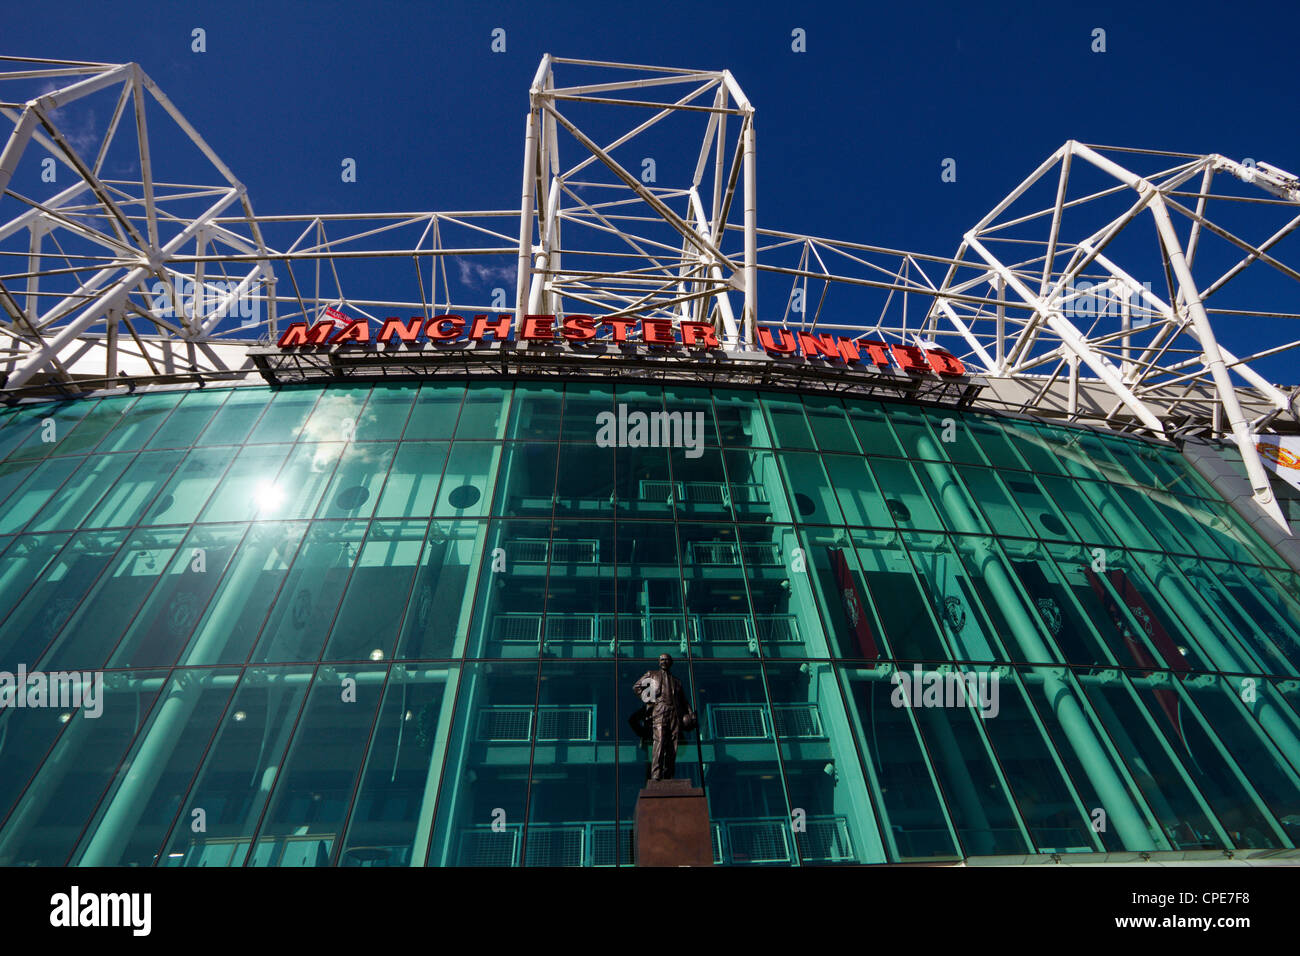 manchester united football club manchester england - Stock Image